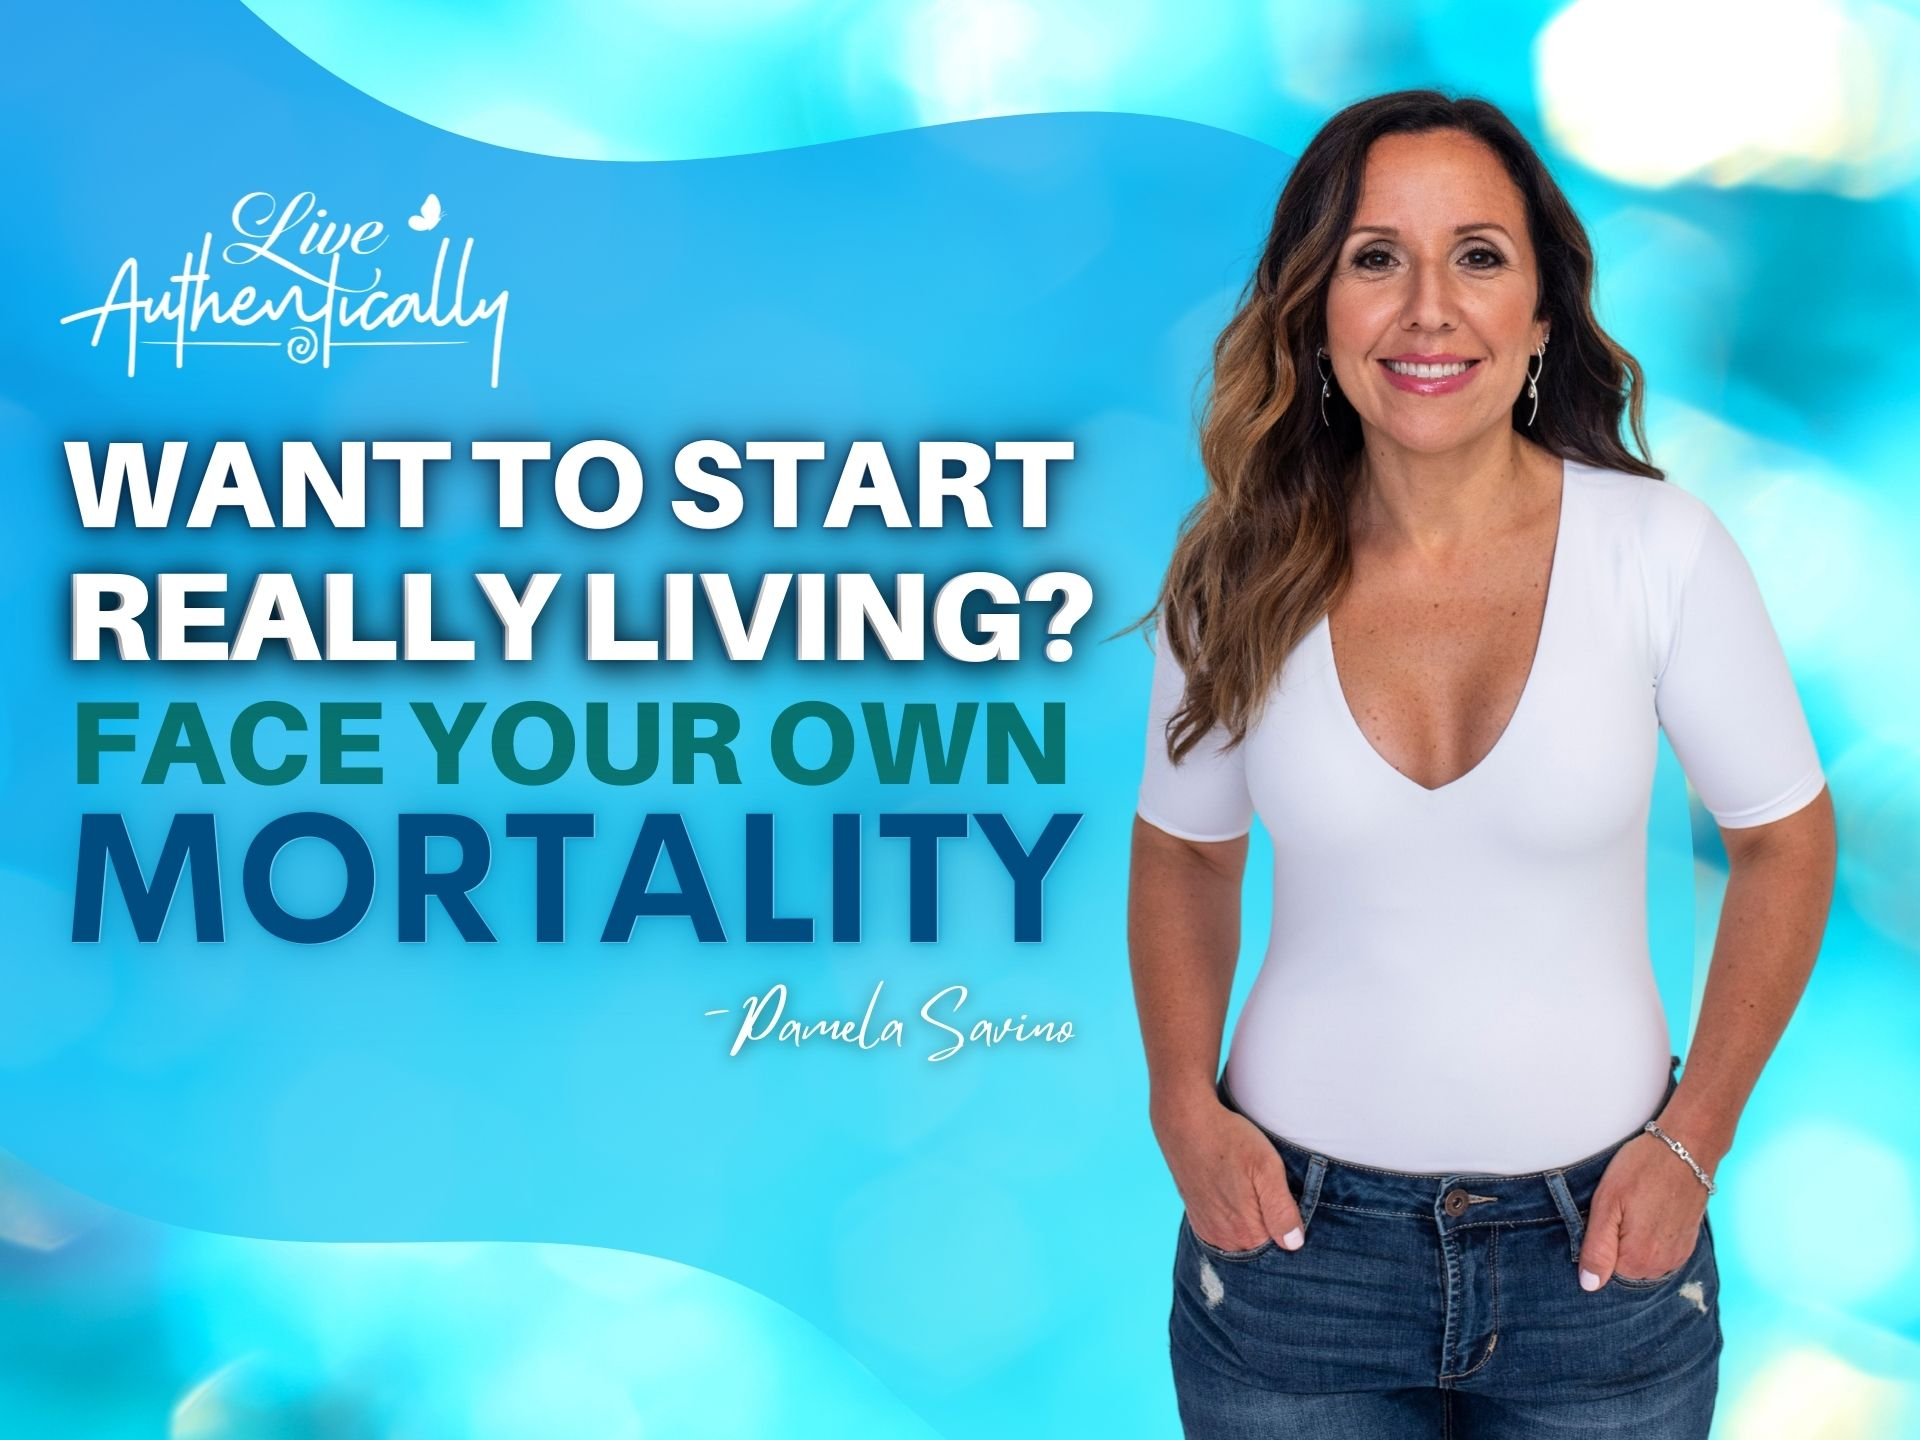 Want to Really Start Living Face Your Own Mortality